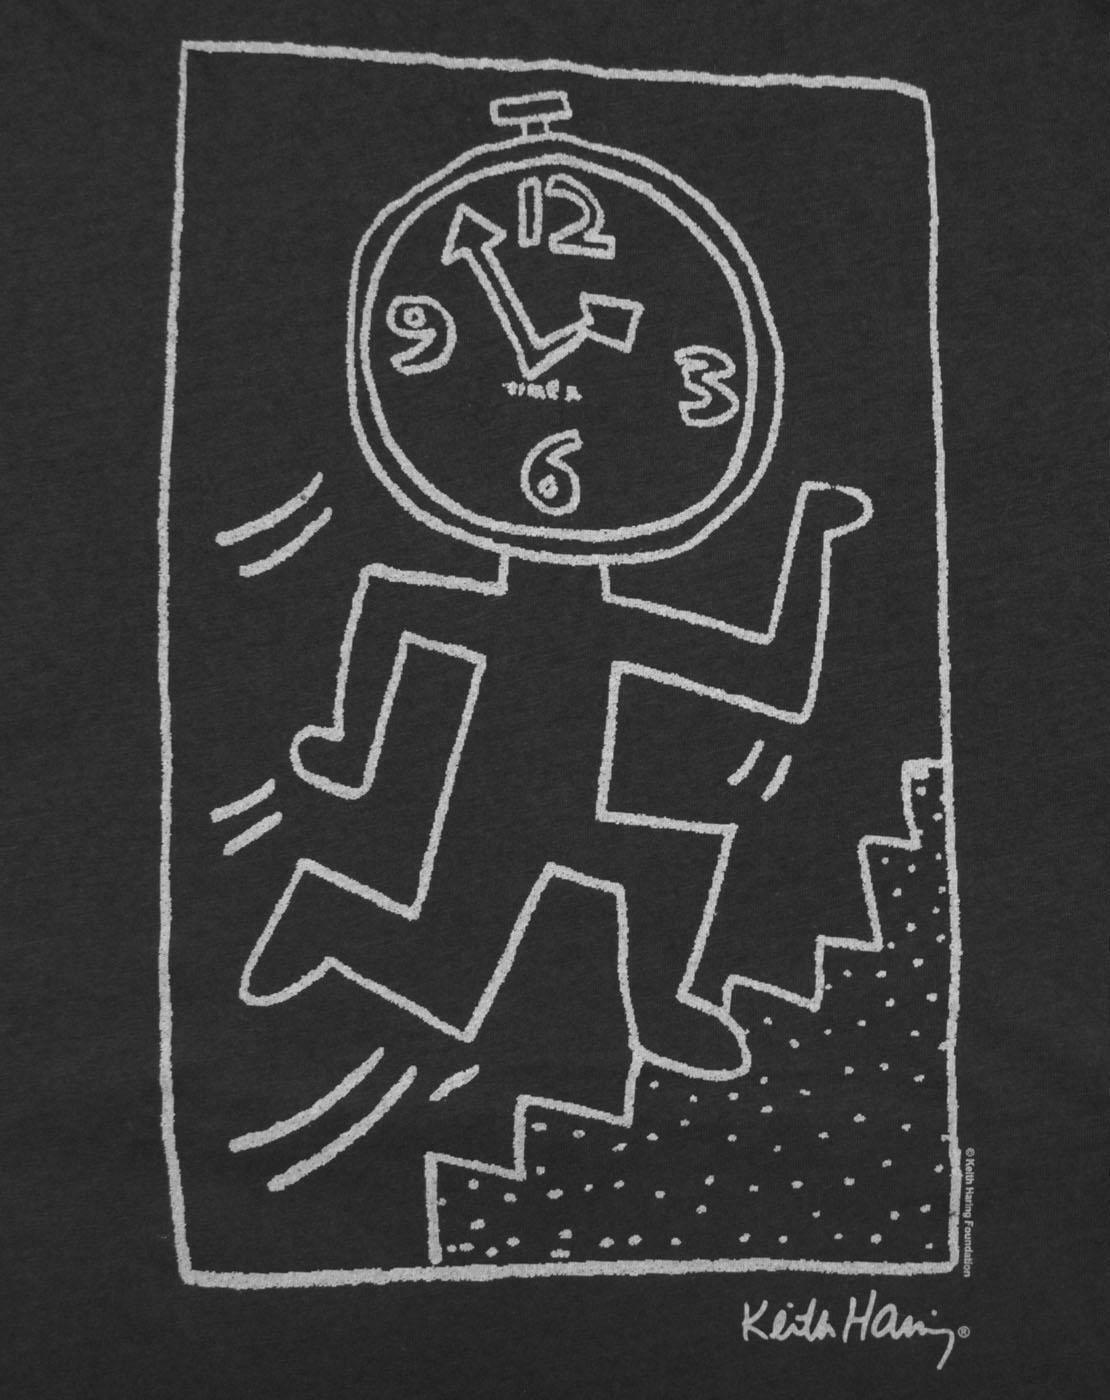 Junk-Food-Keith-Haring-Clock-Women-039-s-Racer-Back-Vest thumbnail 6